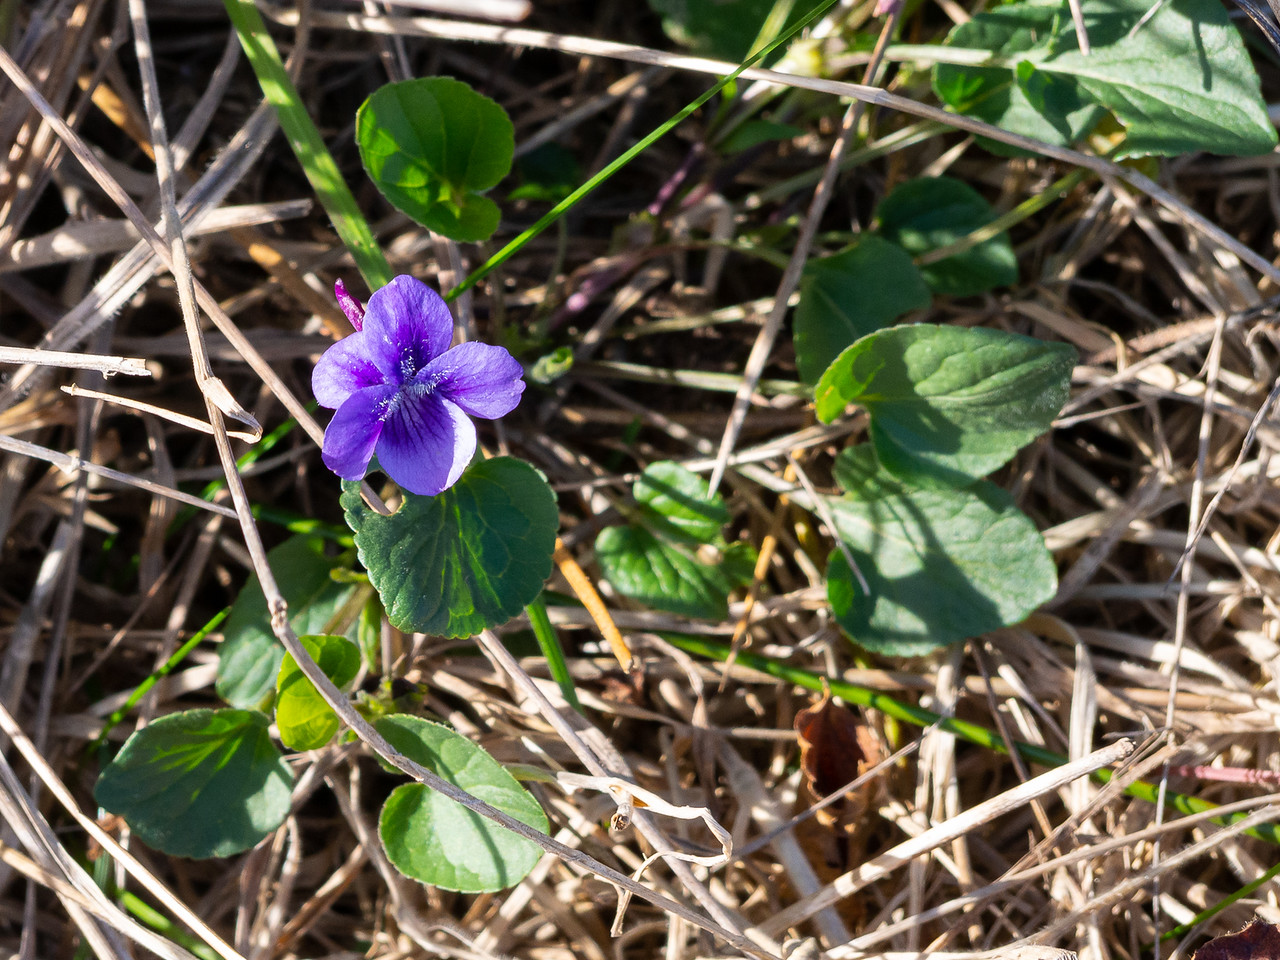 Viola adunca (western dog violet).  Just a good picture of a common plant.  Pt. Reyes National Seashore, February 16. 2014.